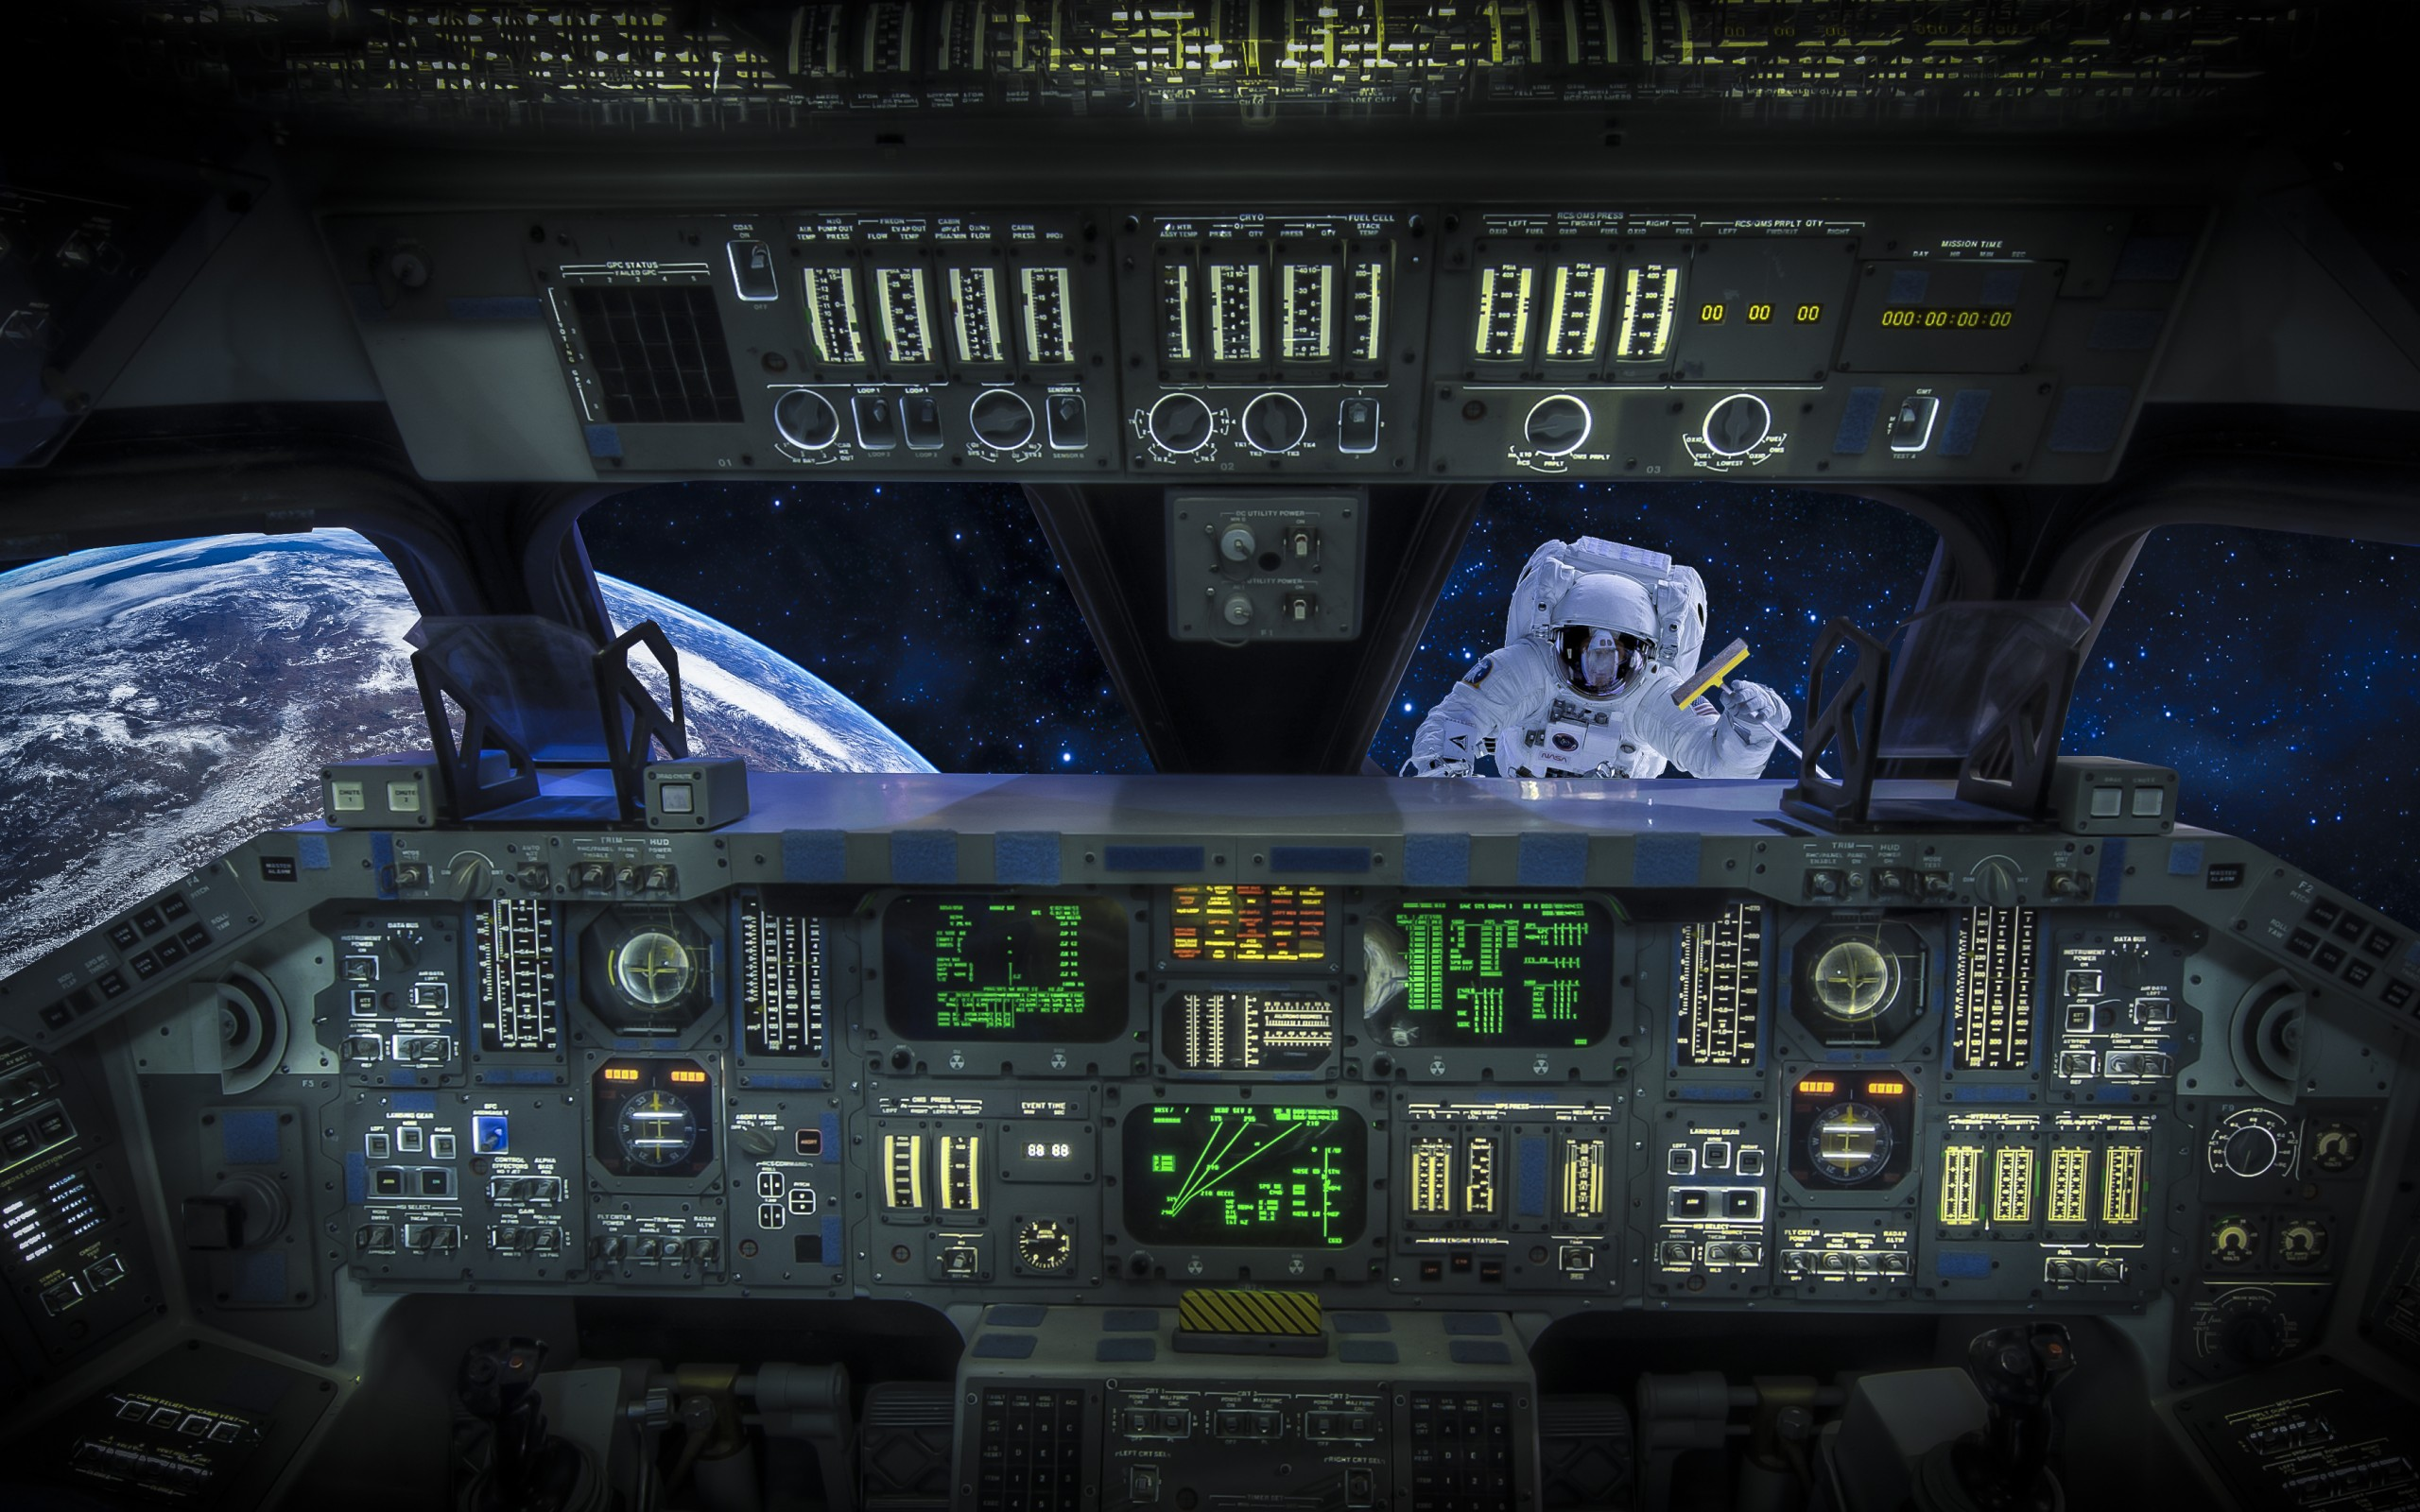 Sci Fi Control Panel Wallpaper : Astronaut cosmonaut cab shuttle space situation vehicles